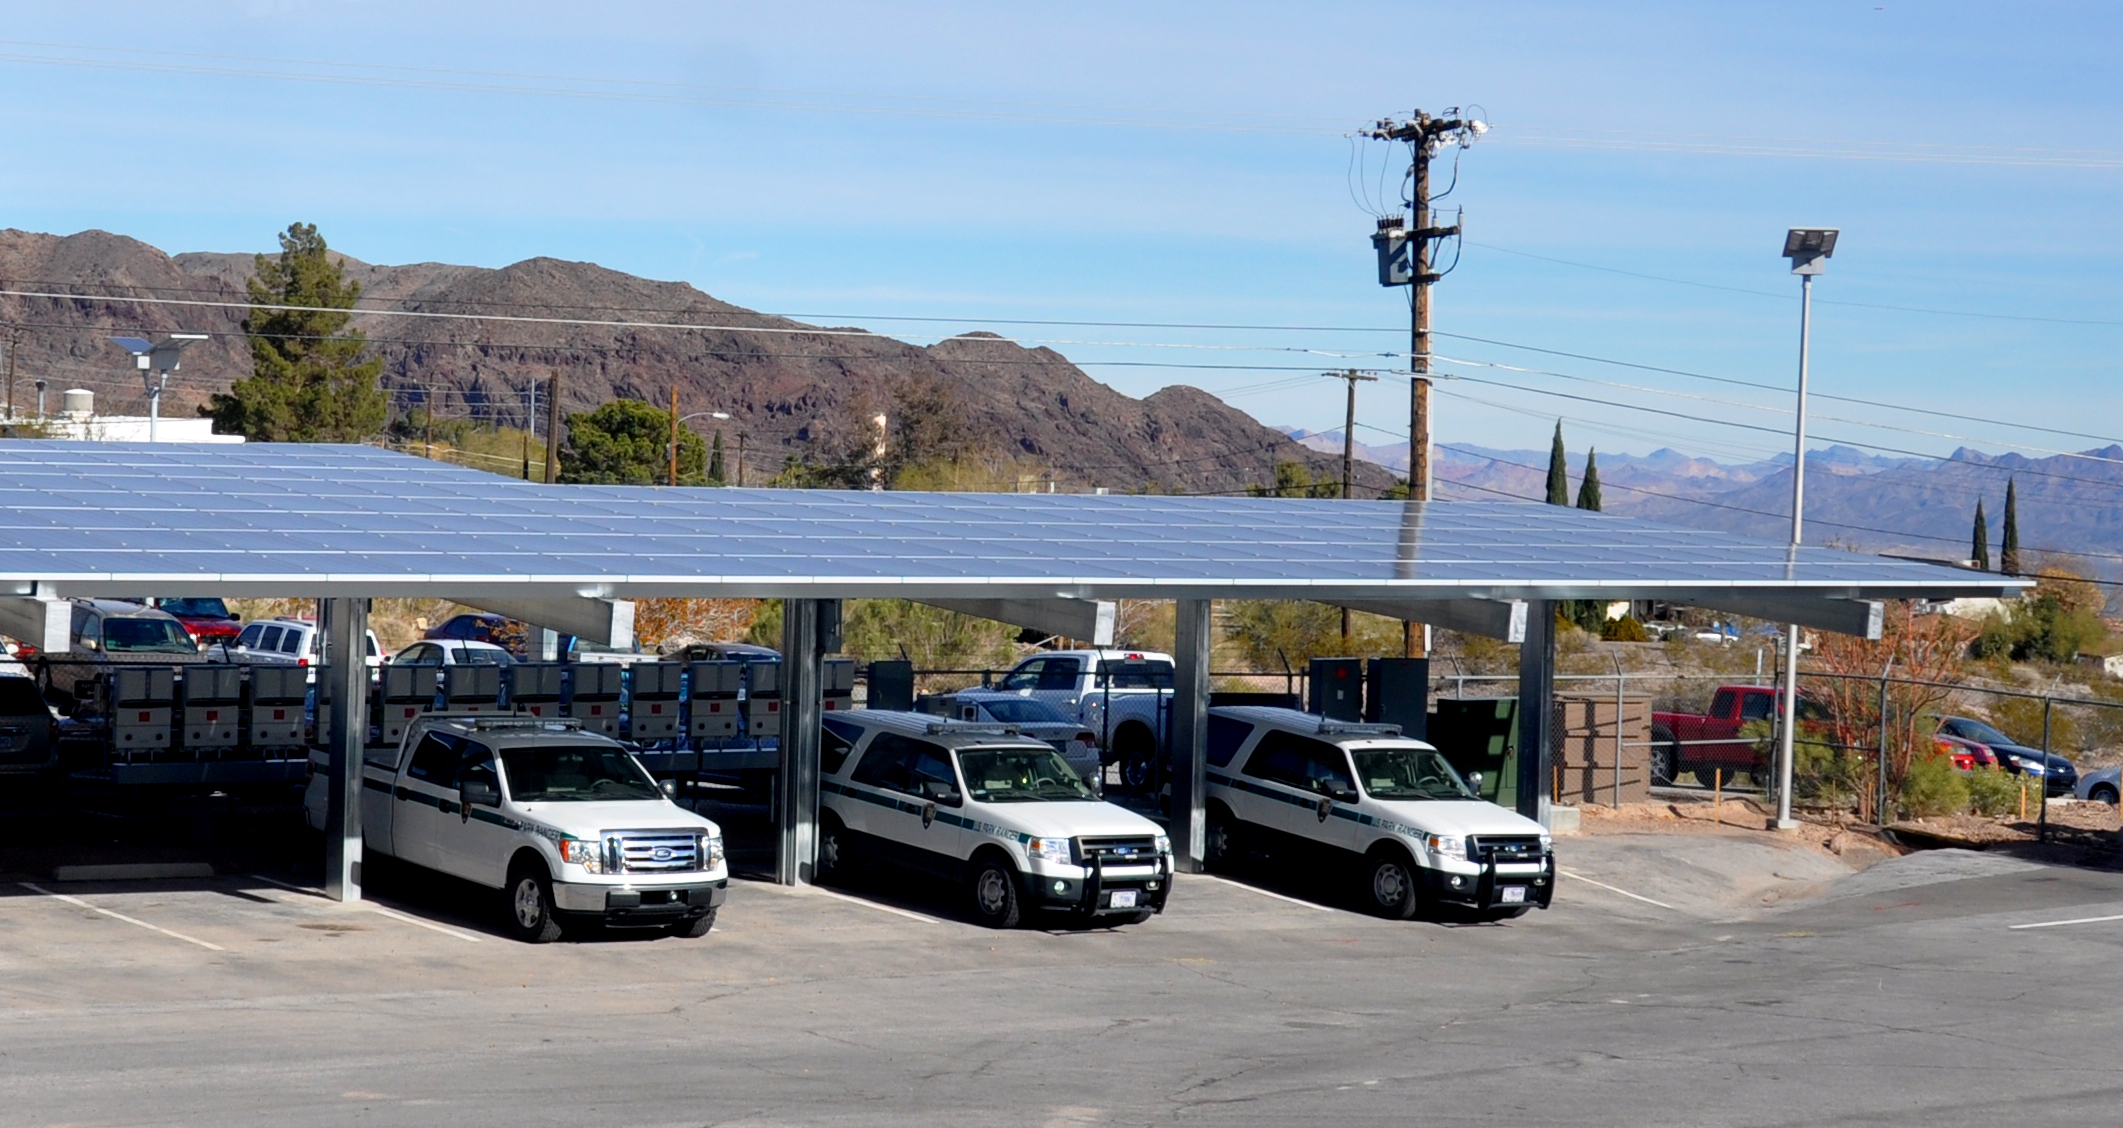 Three photovoltaic systems were added to an administrative area at Lake Mead National Recreation Area to reduce energy costs. PV panels are also located at the visitor center and native plant nursery.